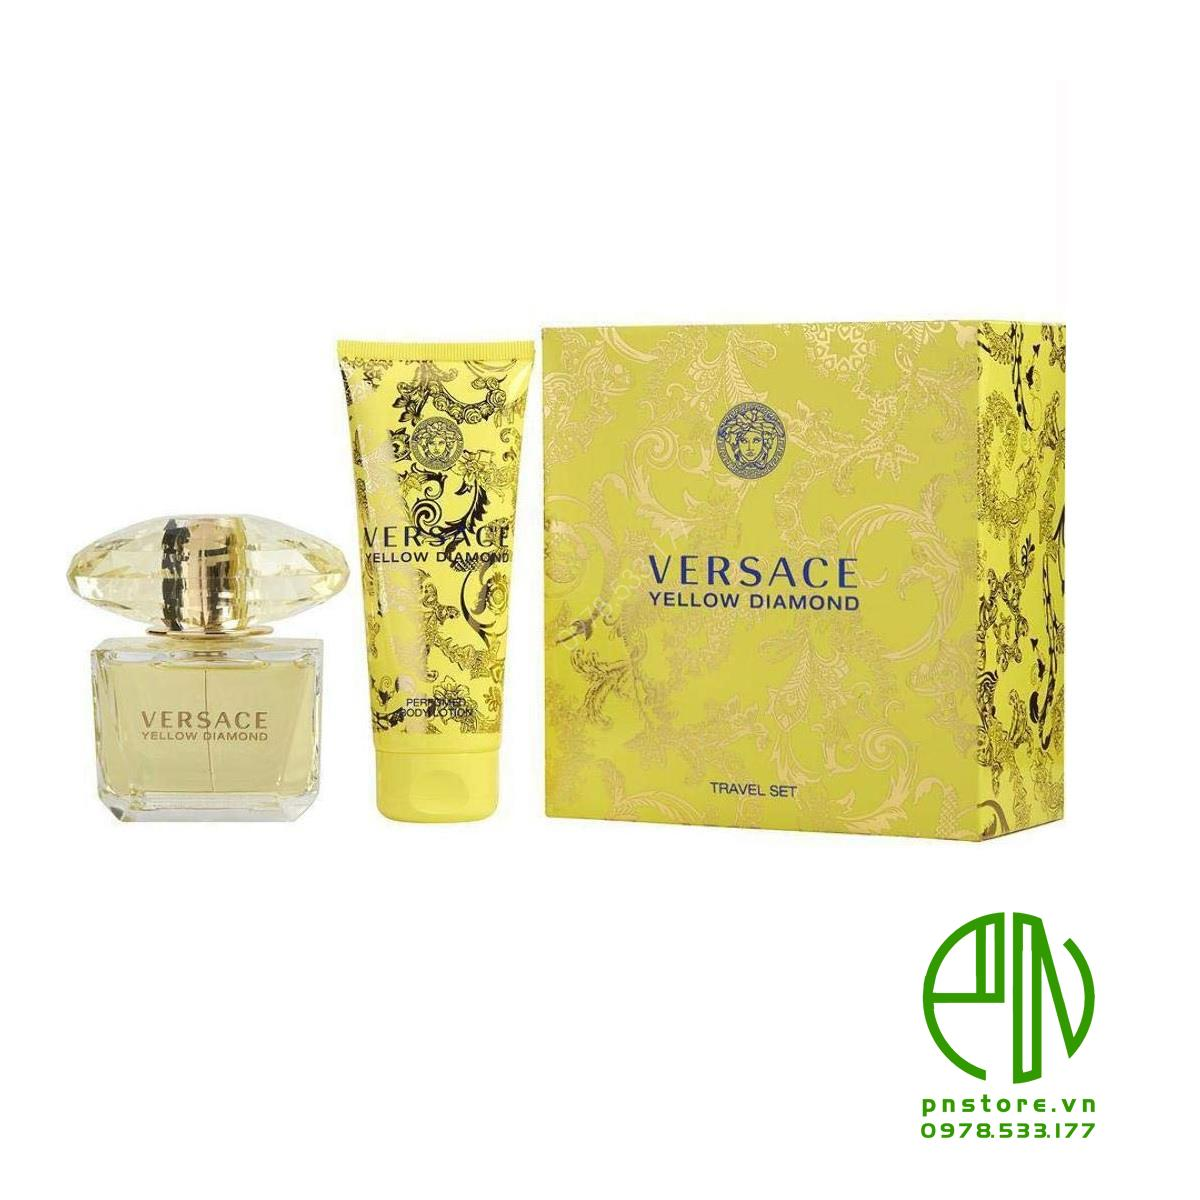 Set Versace Yellow Diamond 90ml + Lotion 100ml chính hãng (Ý)